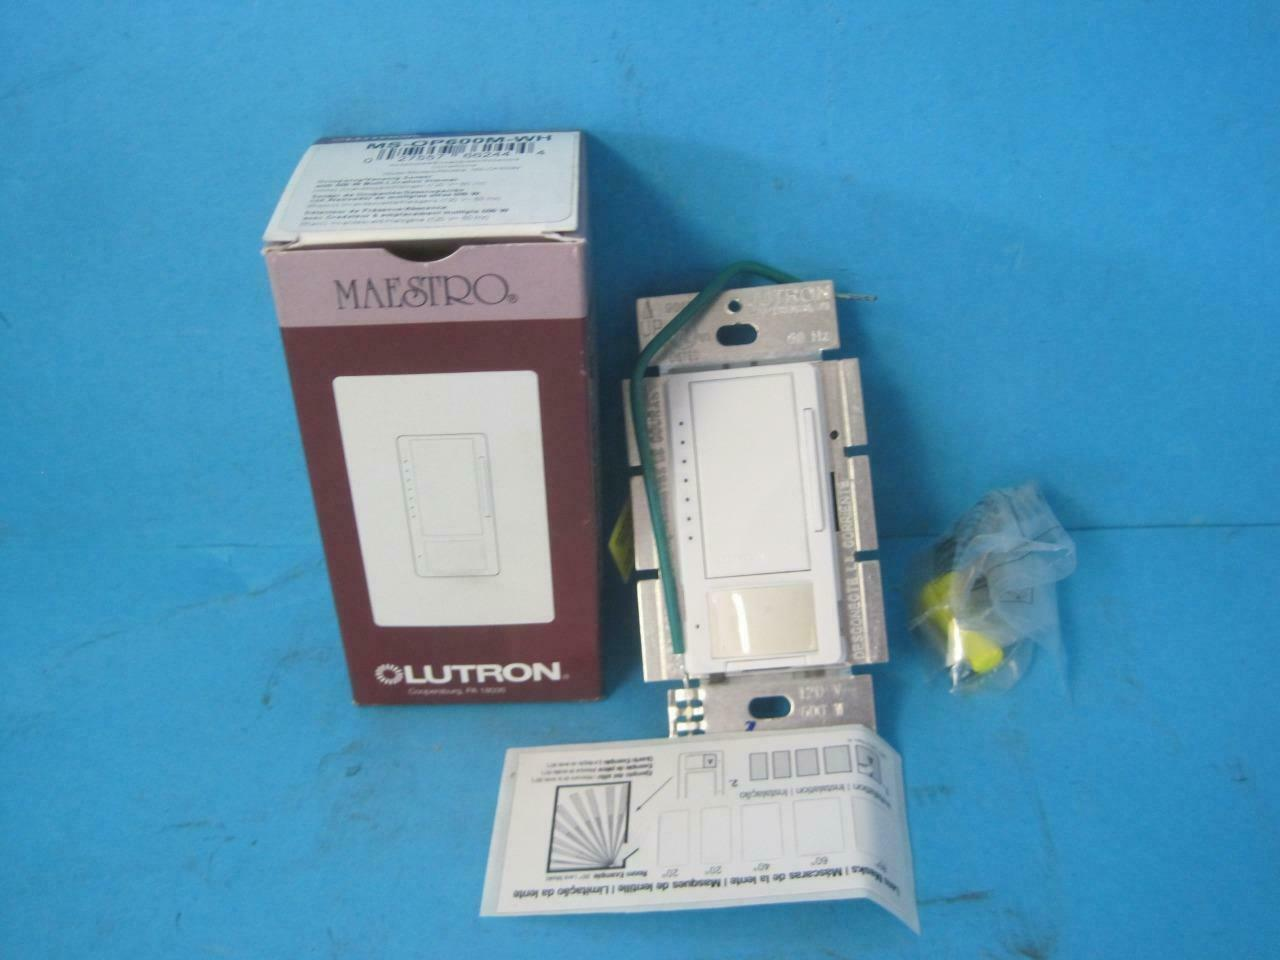 Lutron Maestro MS-OP600G-WH Occupancy Sensor WHITE Wall Dimmer Light Switch